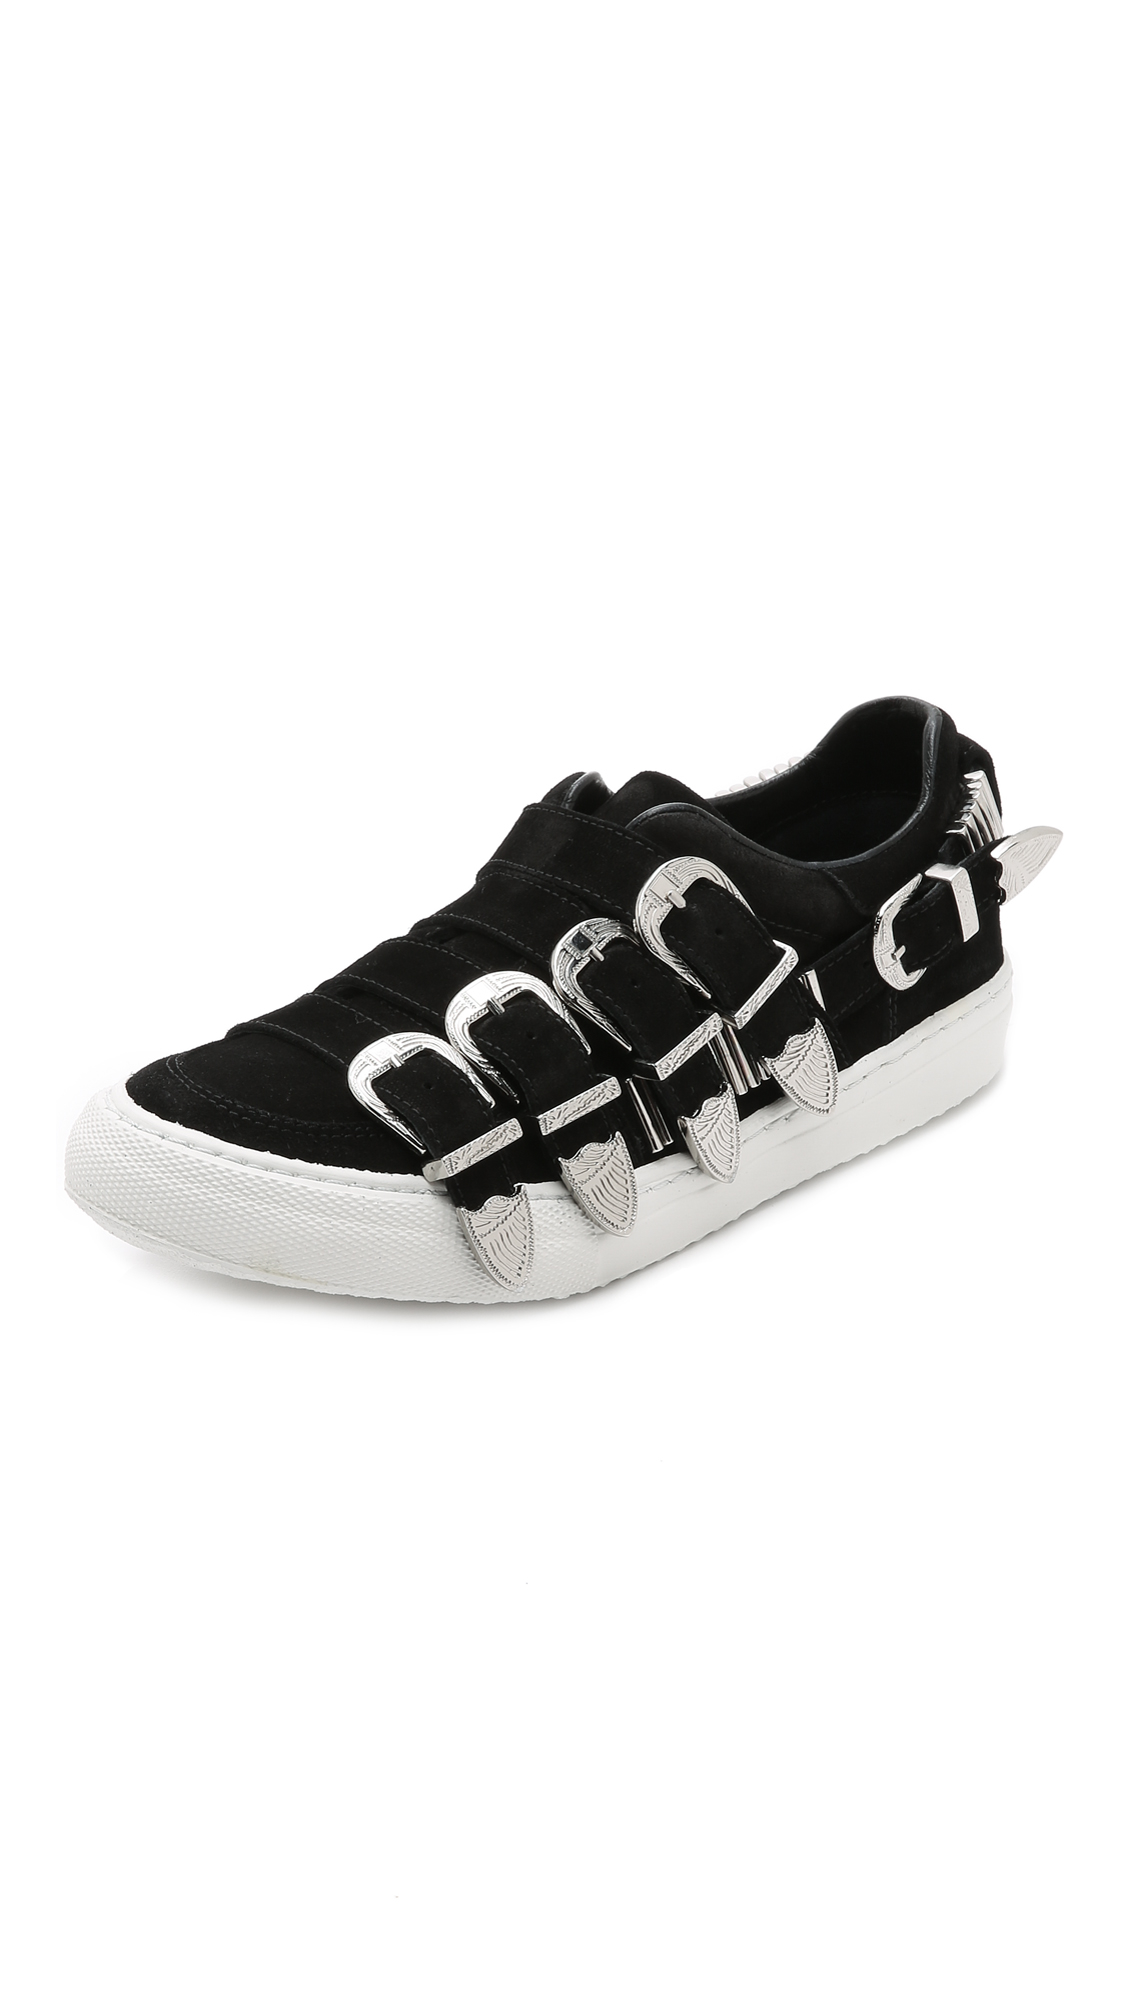 FOOTWEAR - Low-tops & sneakers Toga Archives Hr8Bl3Rov